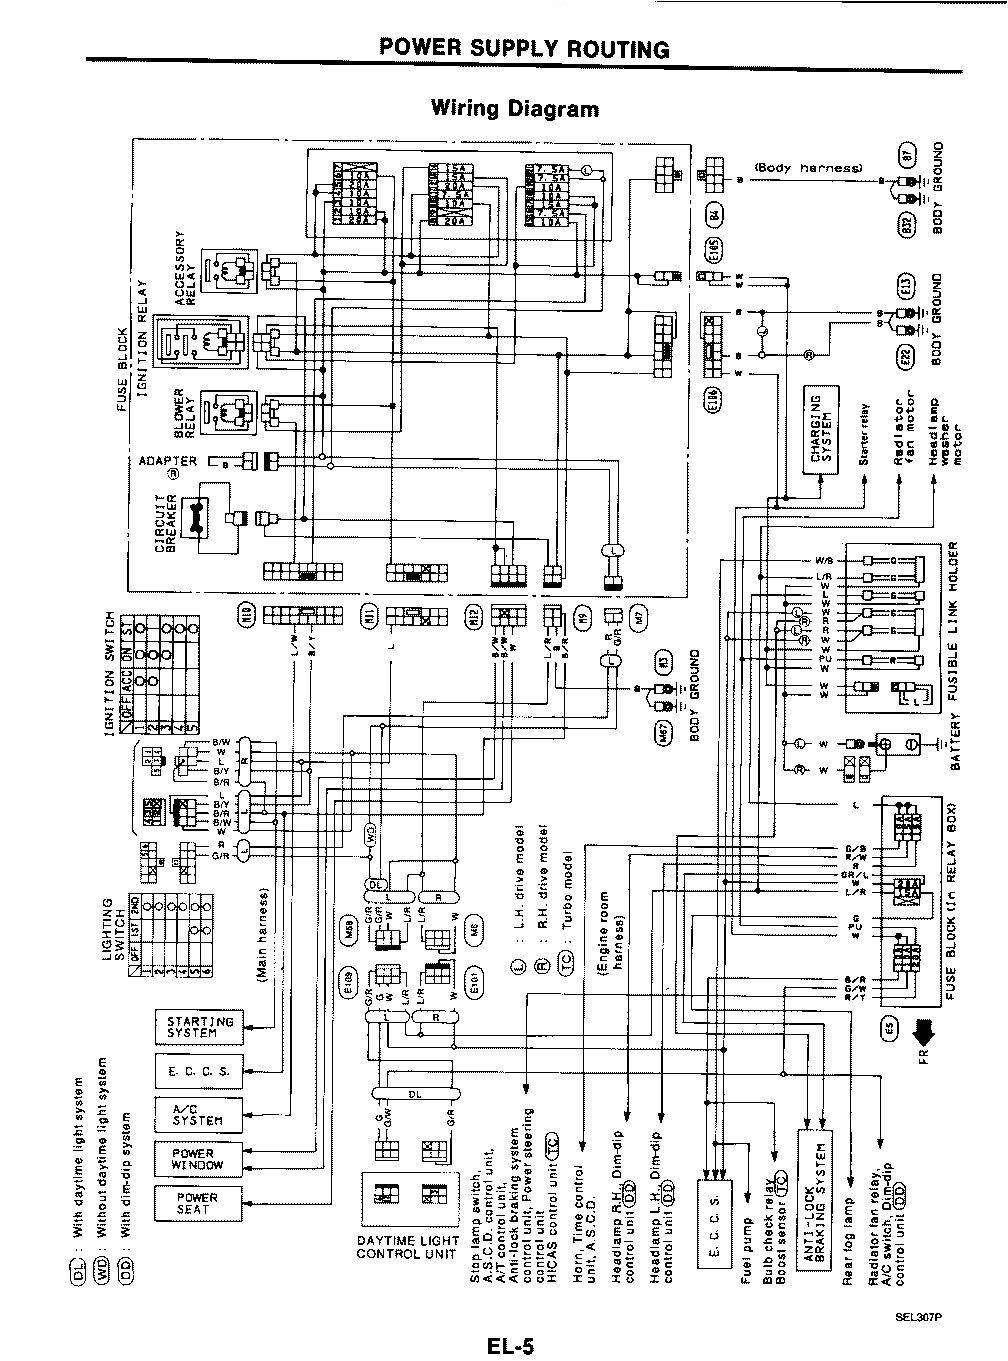 yamaha warrior 350 ignition switch wiring wiring diagram center yamaha key switch wiring diagram adanaliyiz org